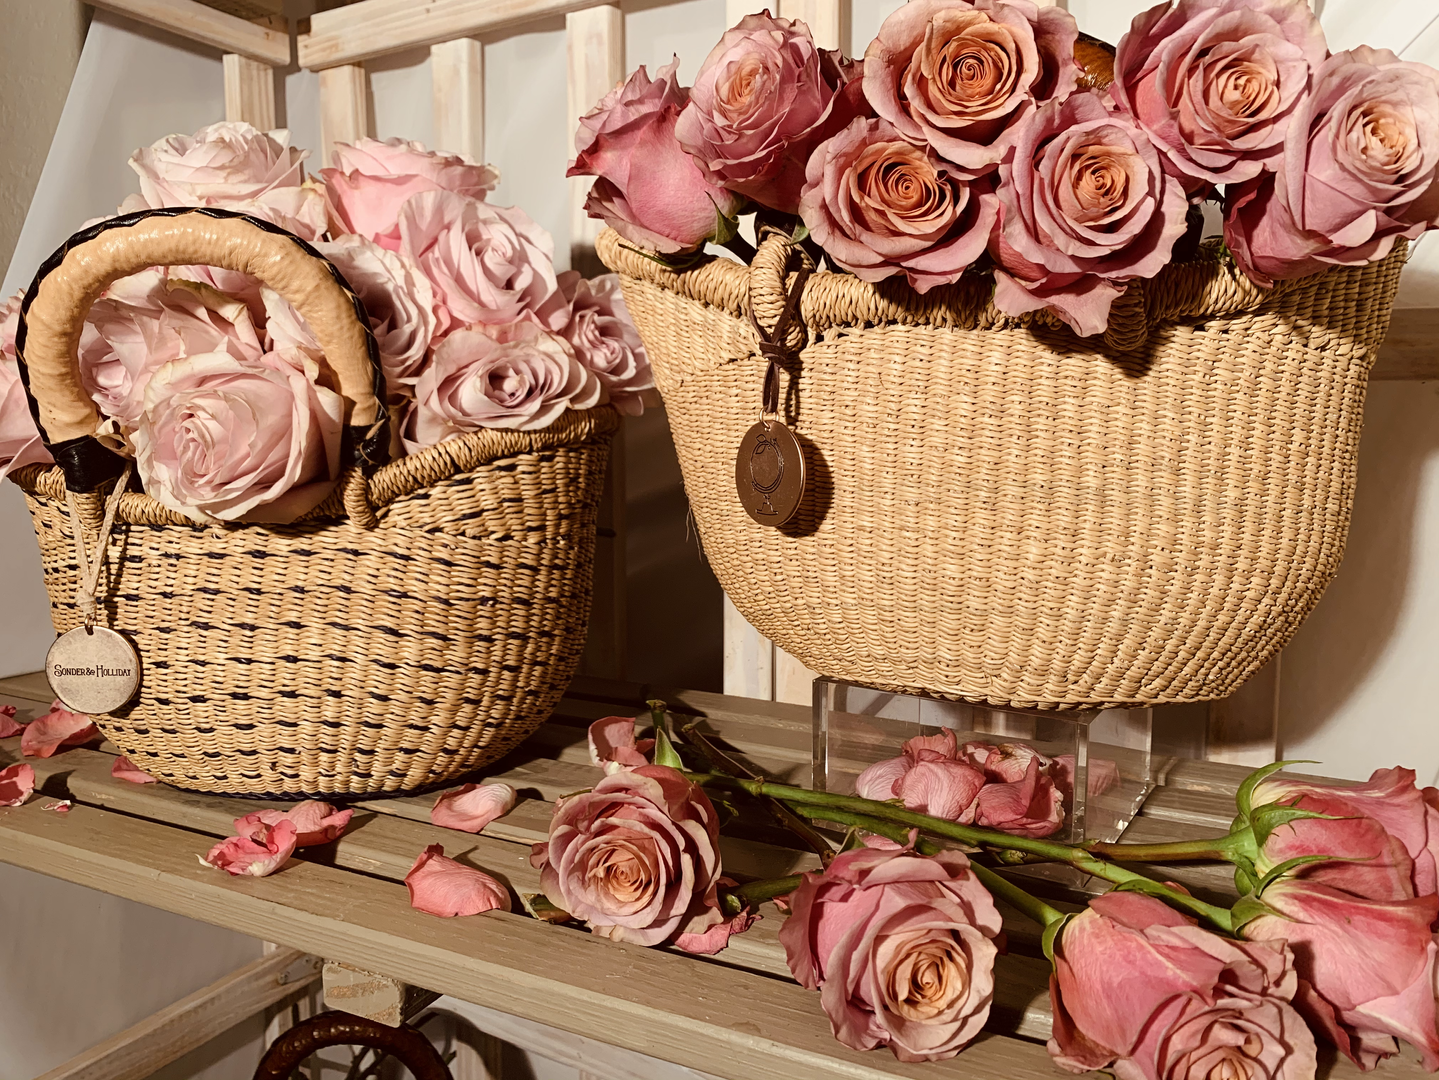 straw baskets with leather handles